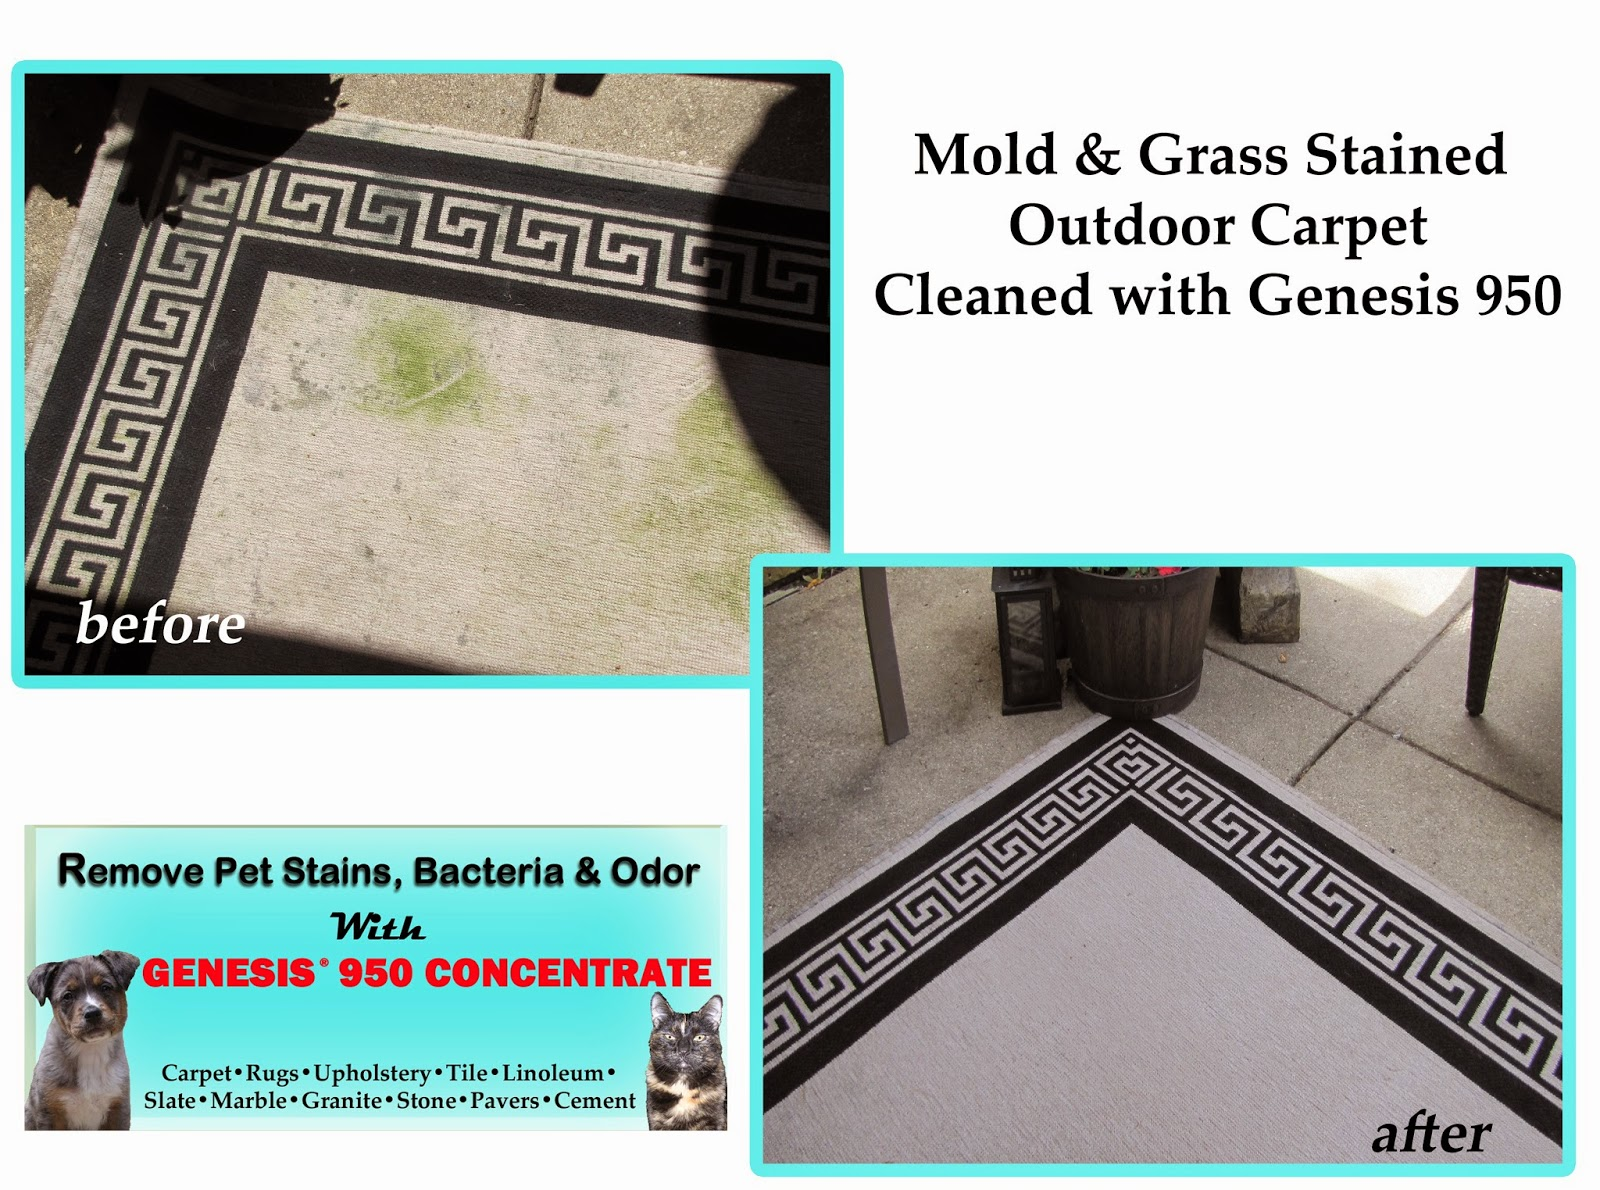 Remove mold, grass stains and grease from rugs